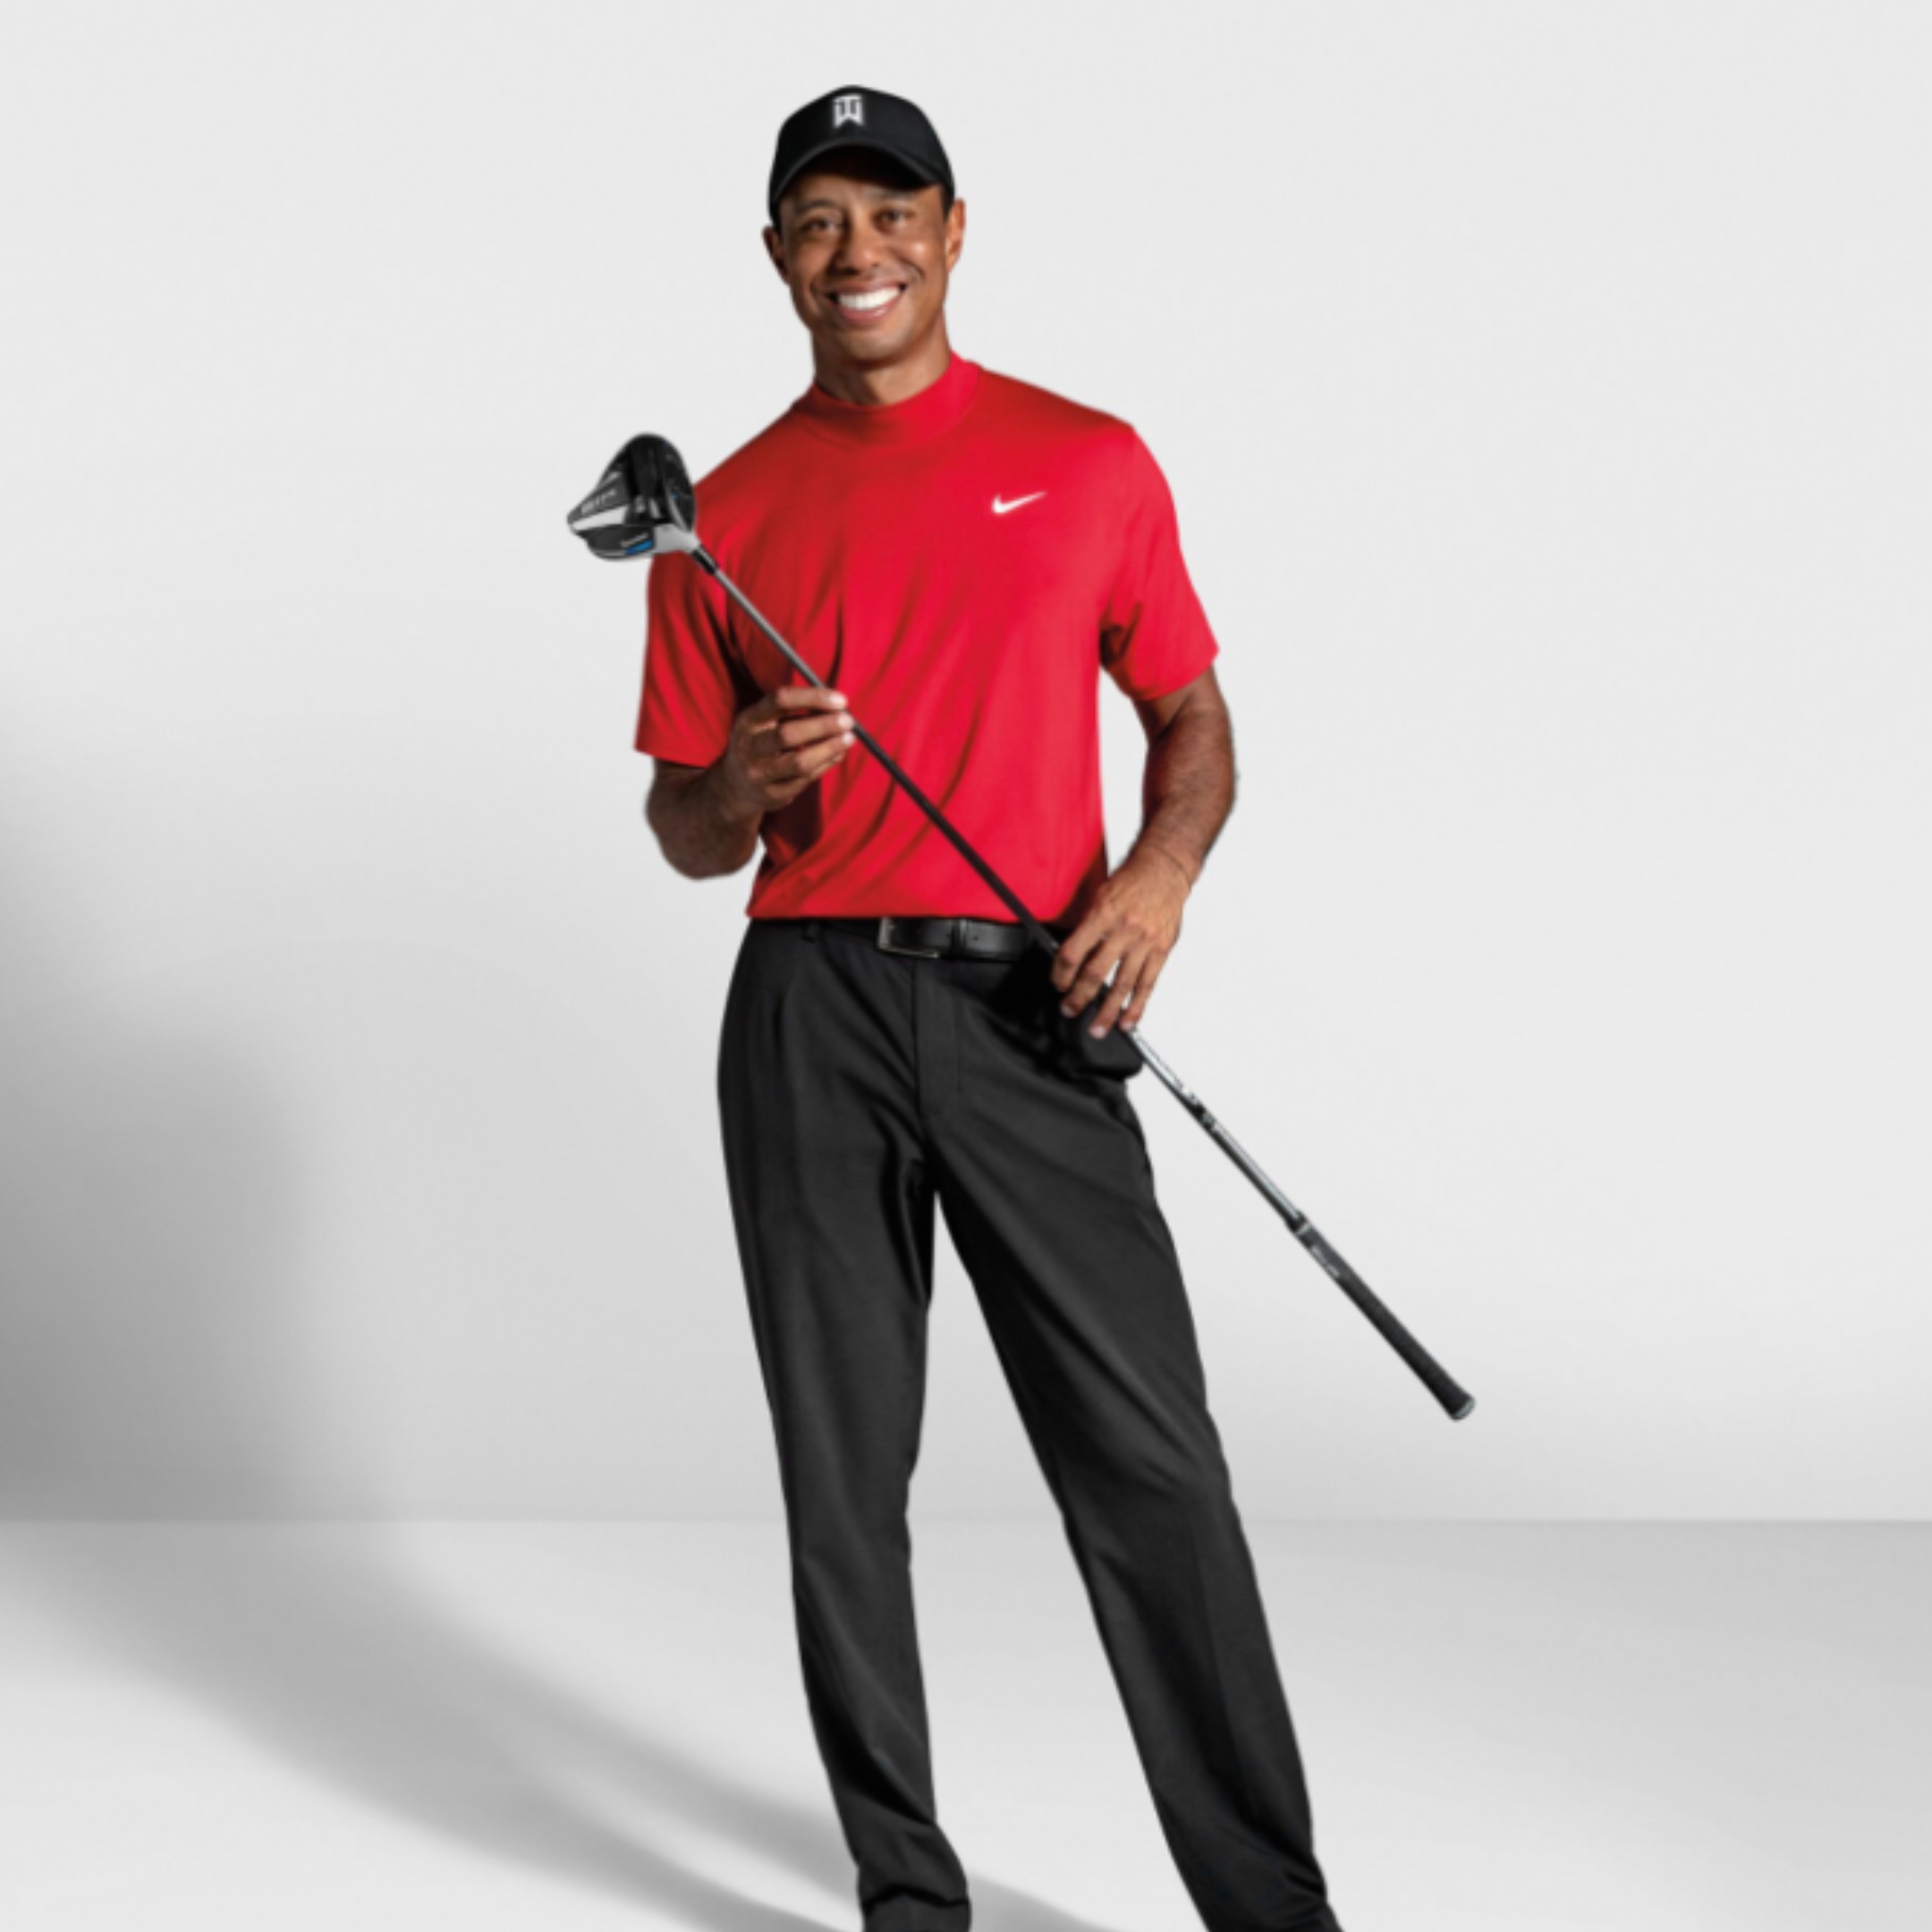 Tiger woods, golf, TaylorMade, 360 MAGAZINE